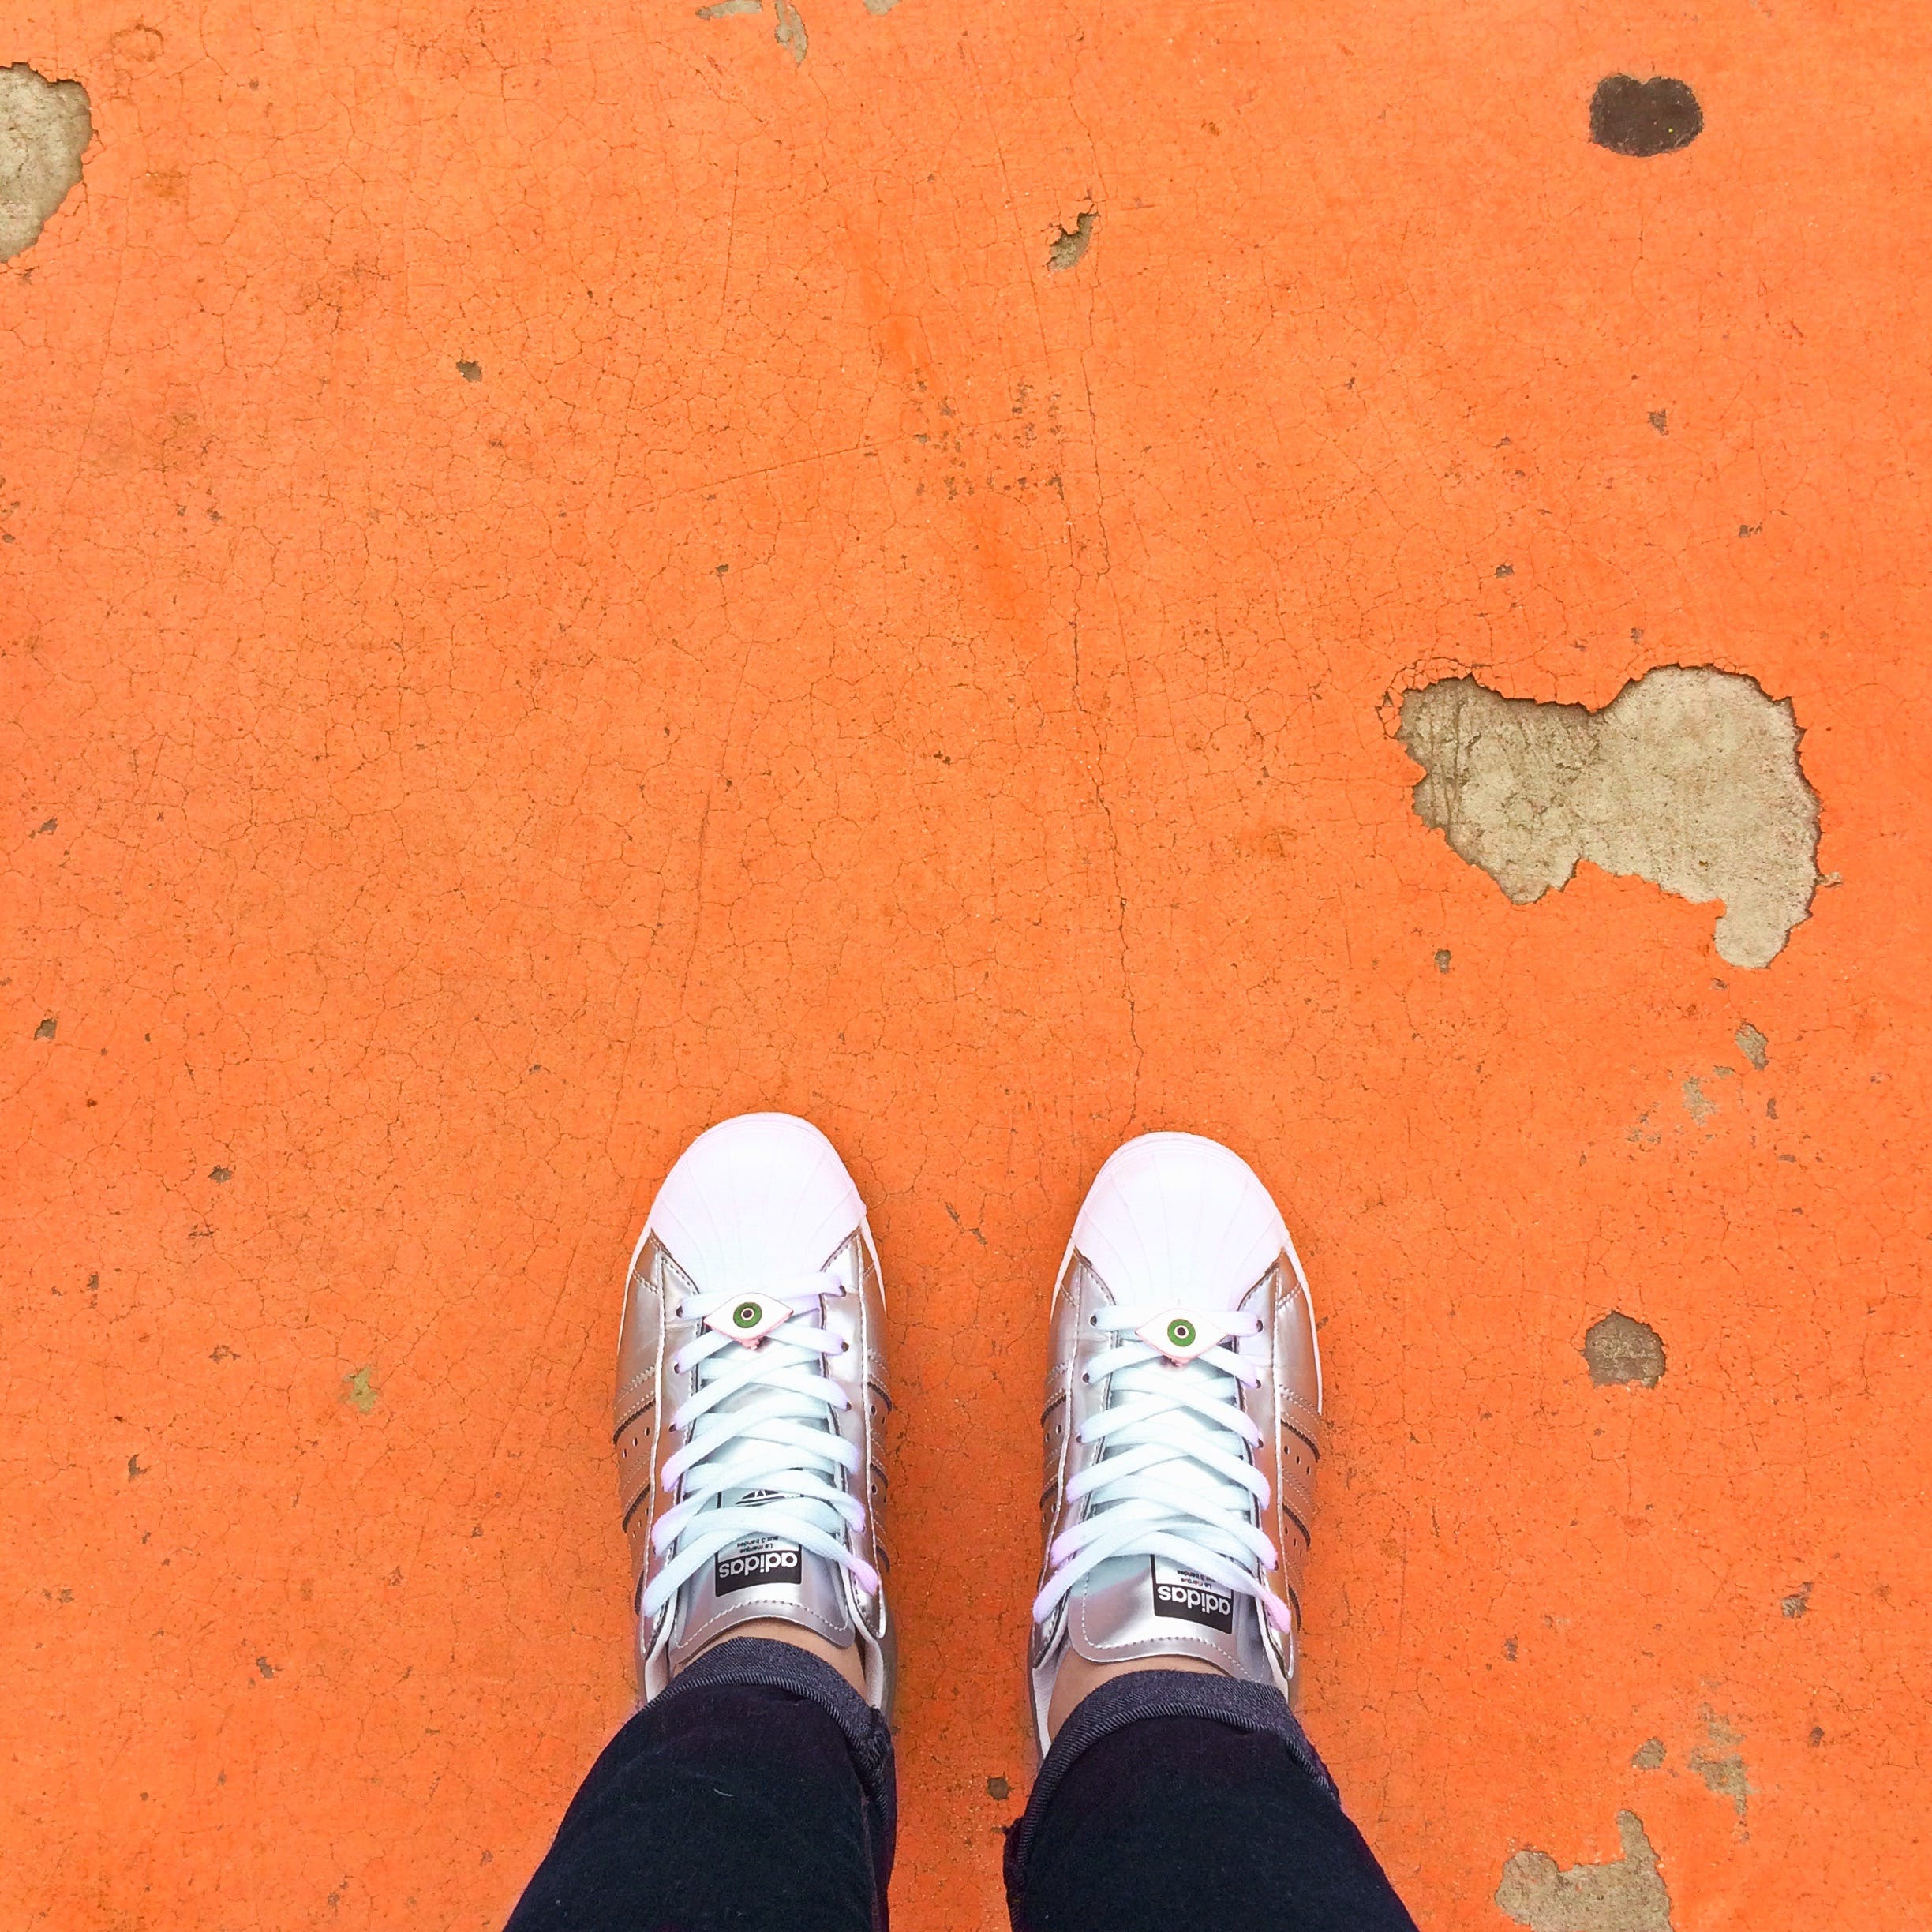 Person Wearing Sneakers Standing on Orange Floor